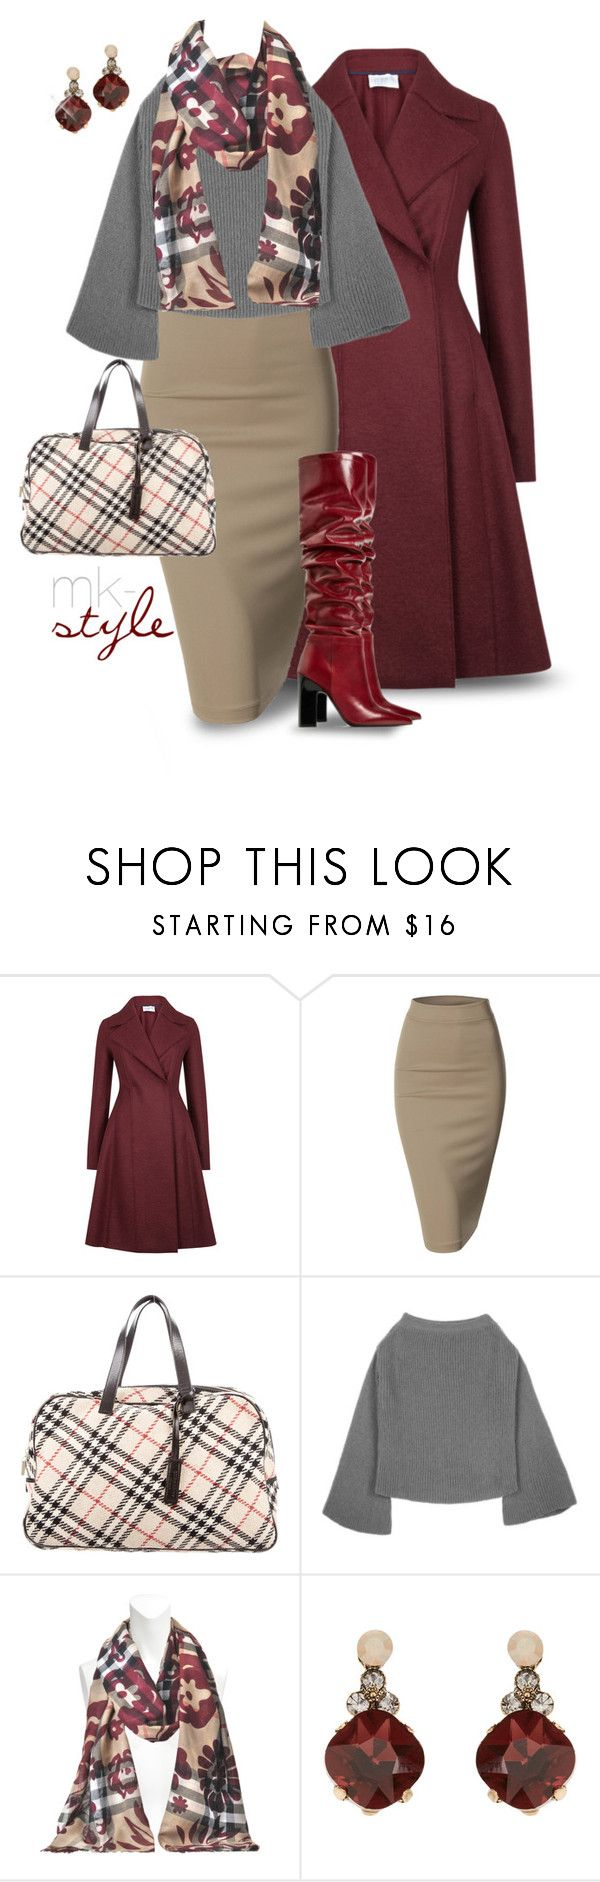 """""""Winter Workday"""" by mk-style ❤ liked on Polyvore featuring Trilogy, Harris Wharf London, Doublju, Burberry and Accessorize"""